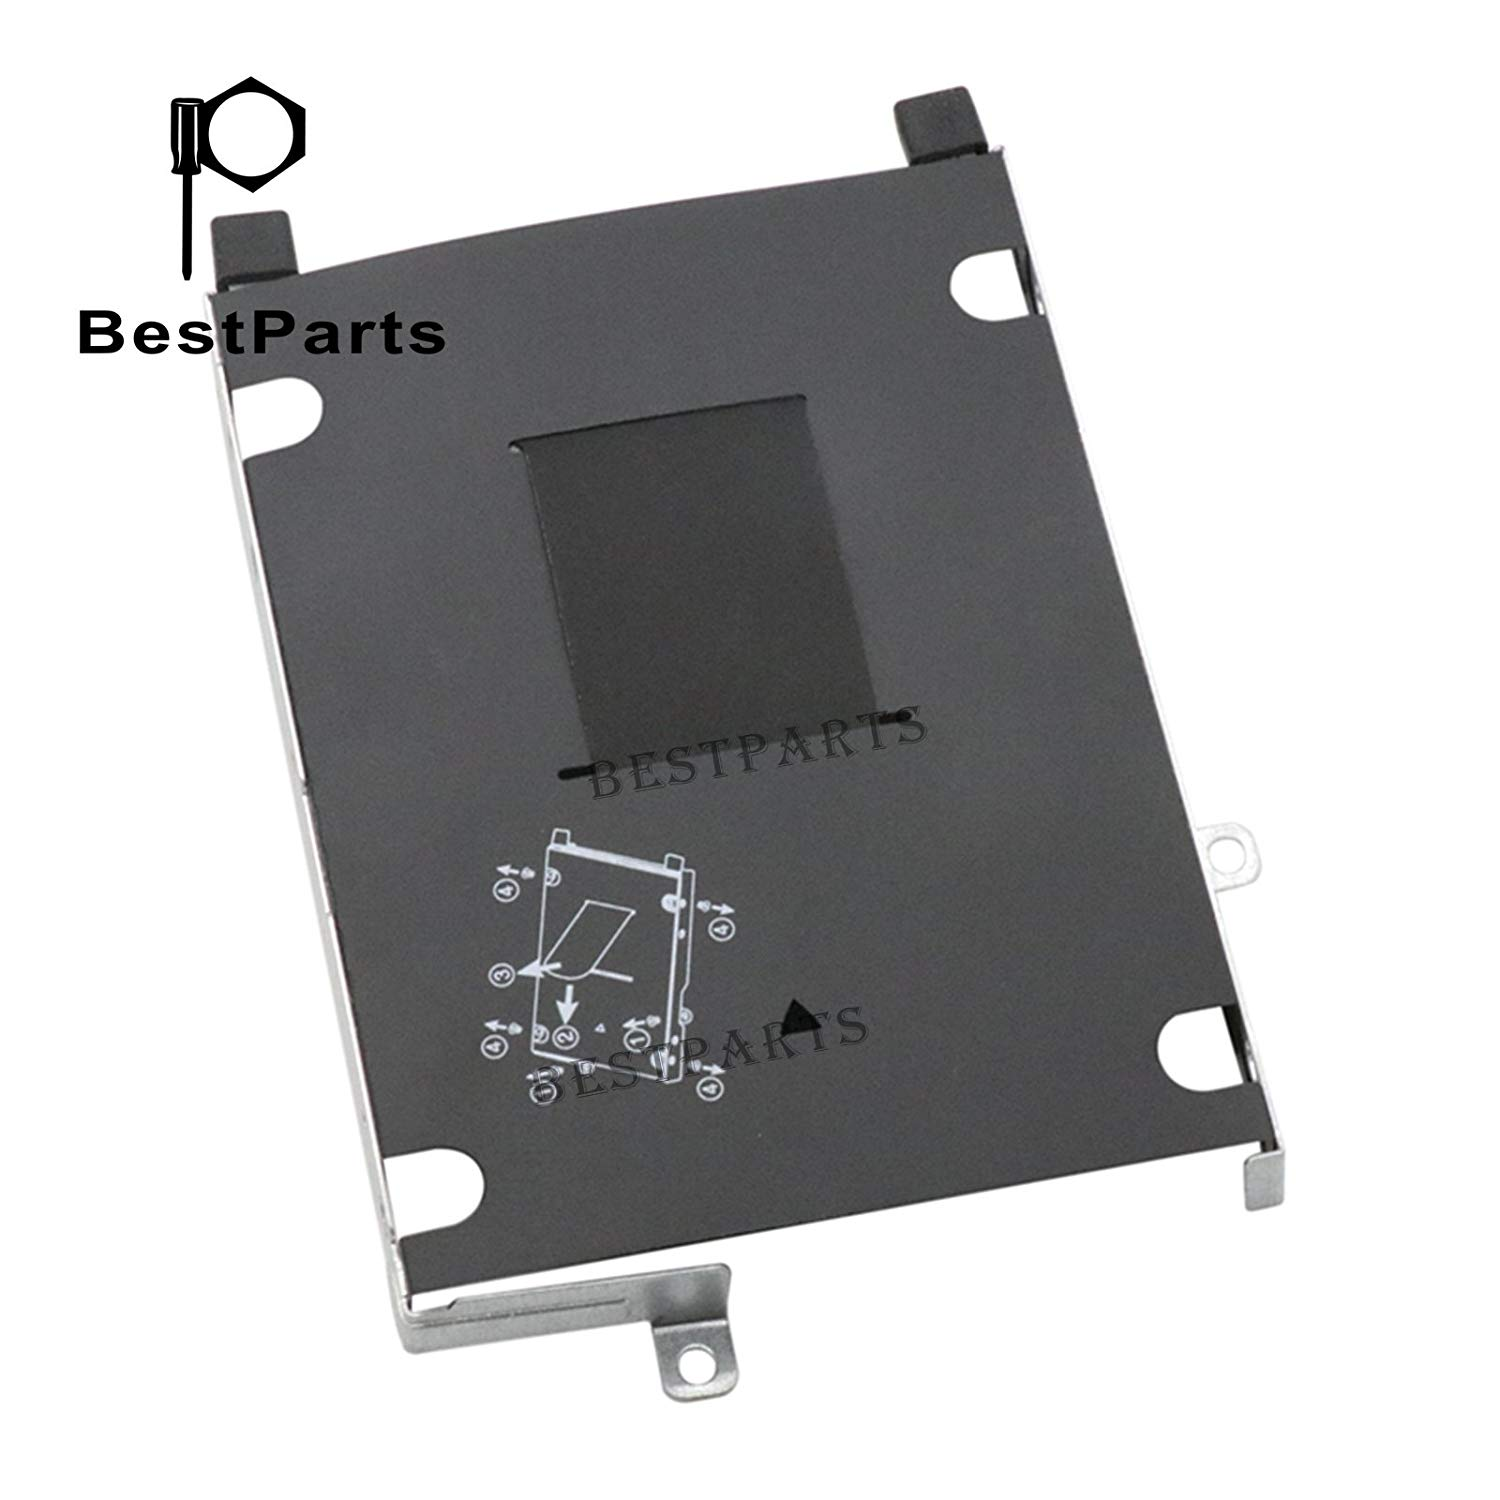 BestParts FOR HP ProBook 455 450 470 475 G4 Hard Drive Caddy Hardware kit w/Screw US